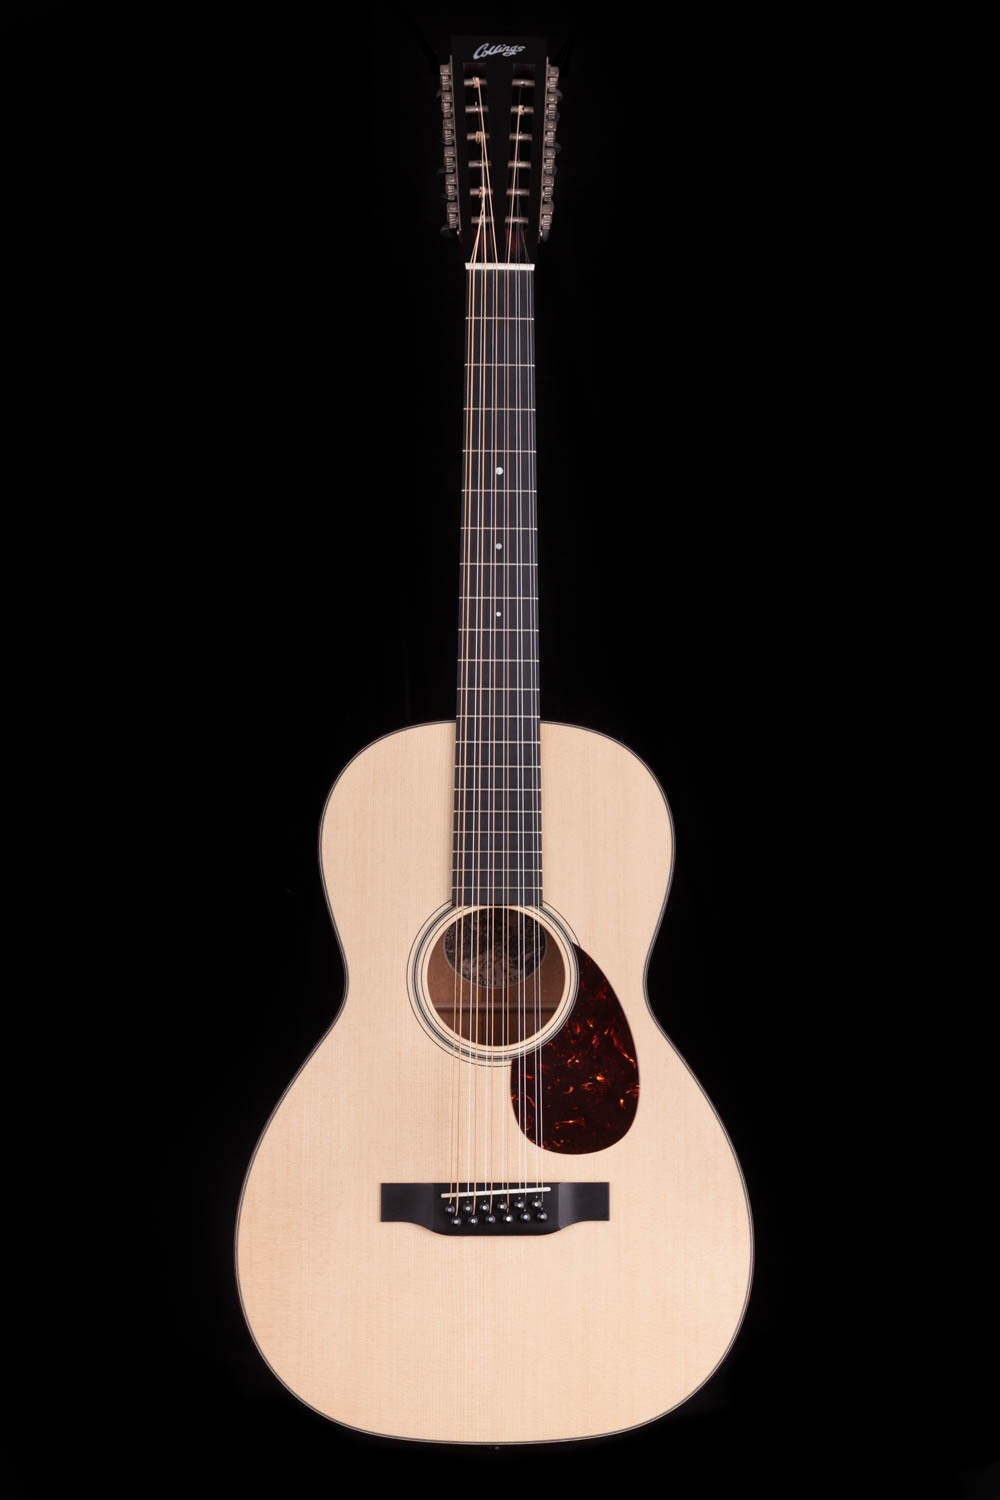 collings 01 12 string small body 12 string acoustic guitar. Black Bedroom Furniture Sets. Home Design Ideas